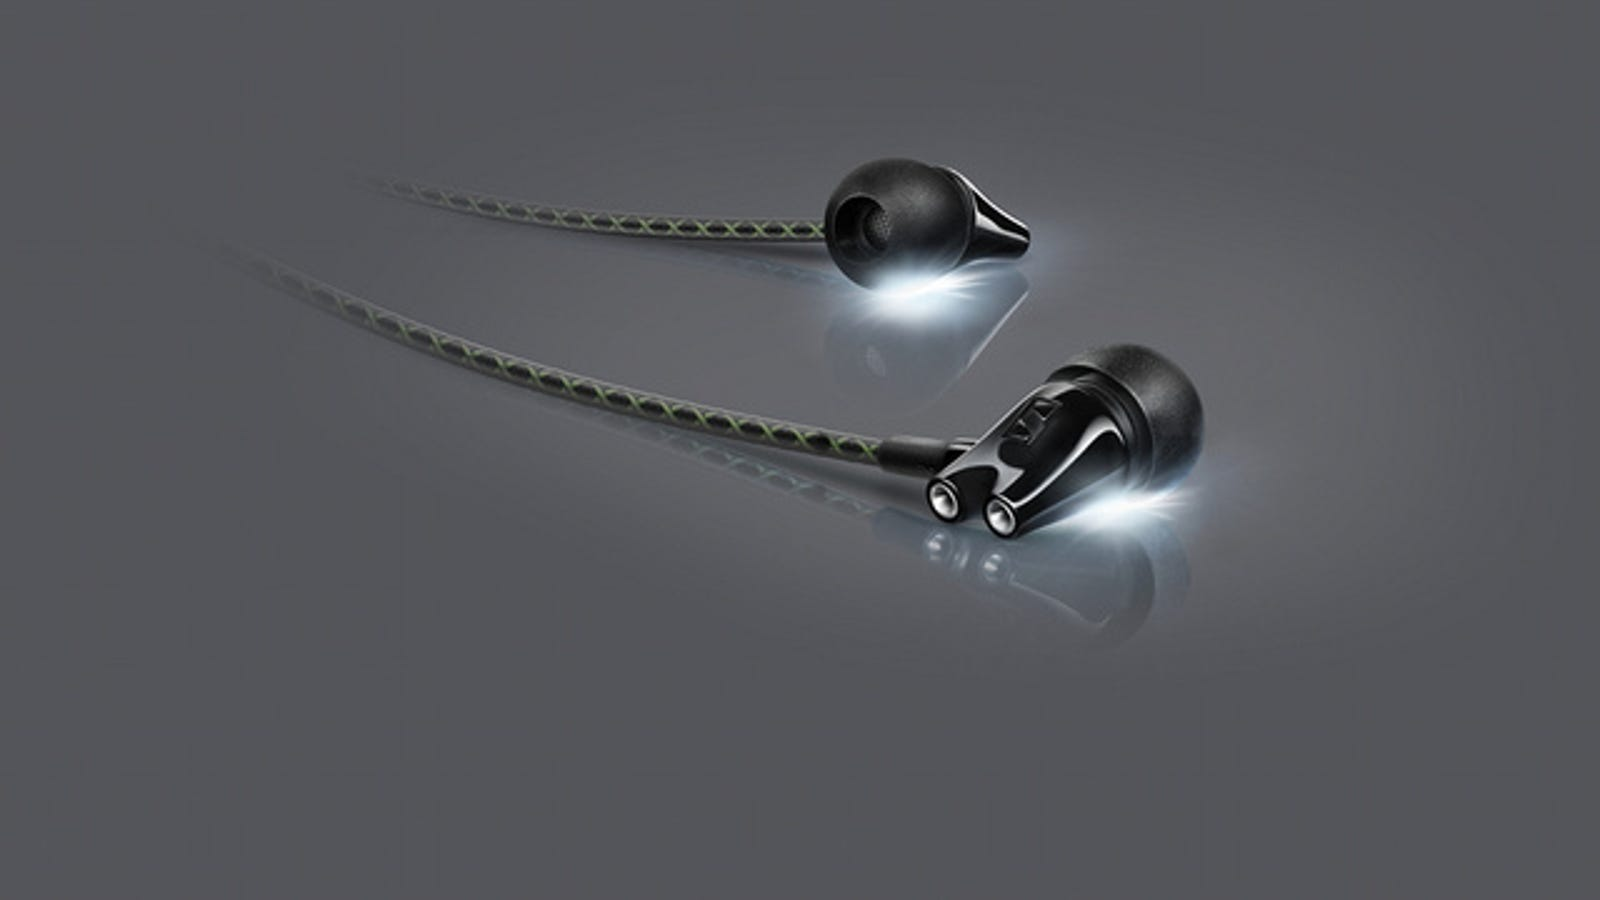 metal earbuds braided